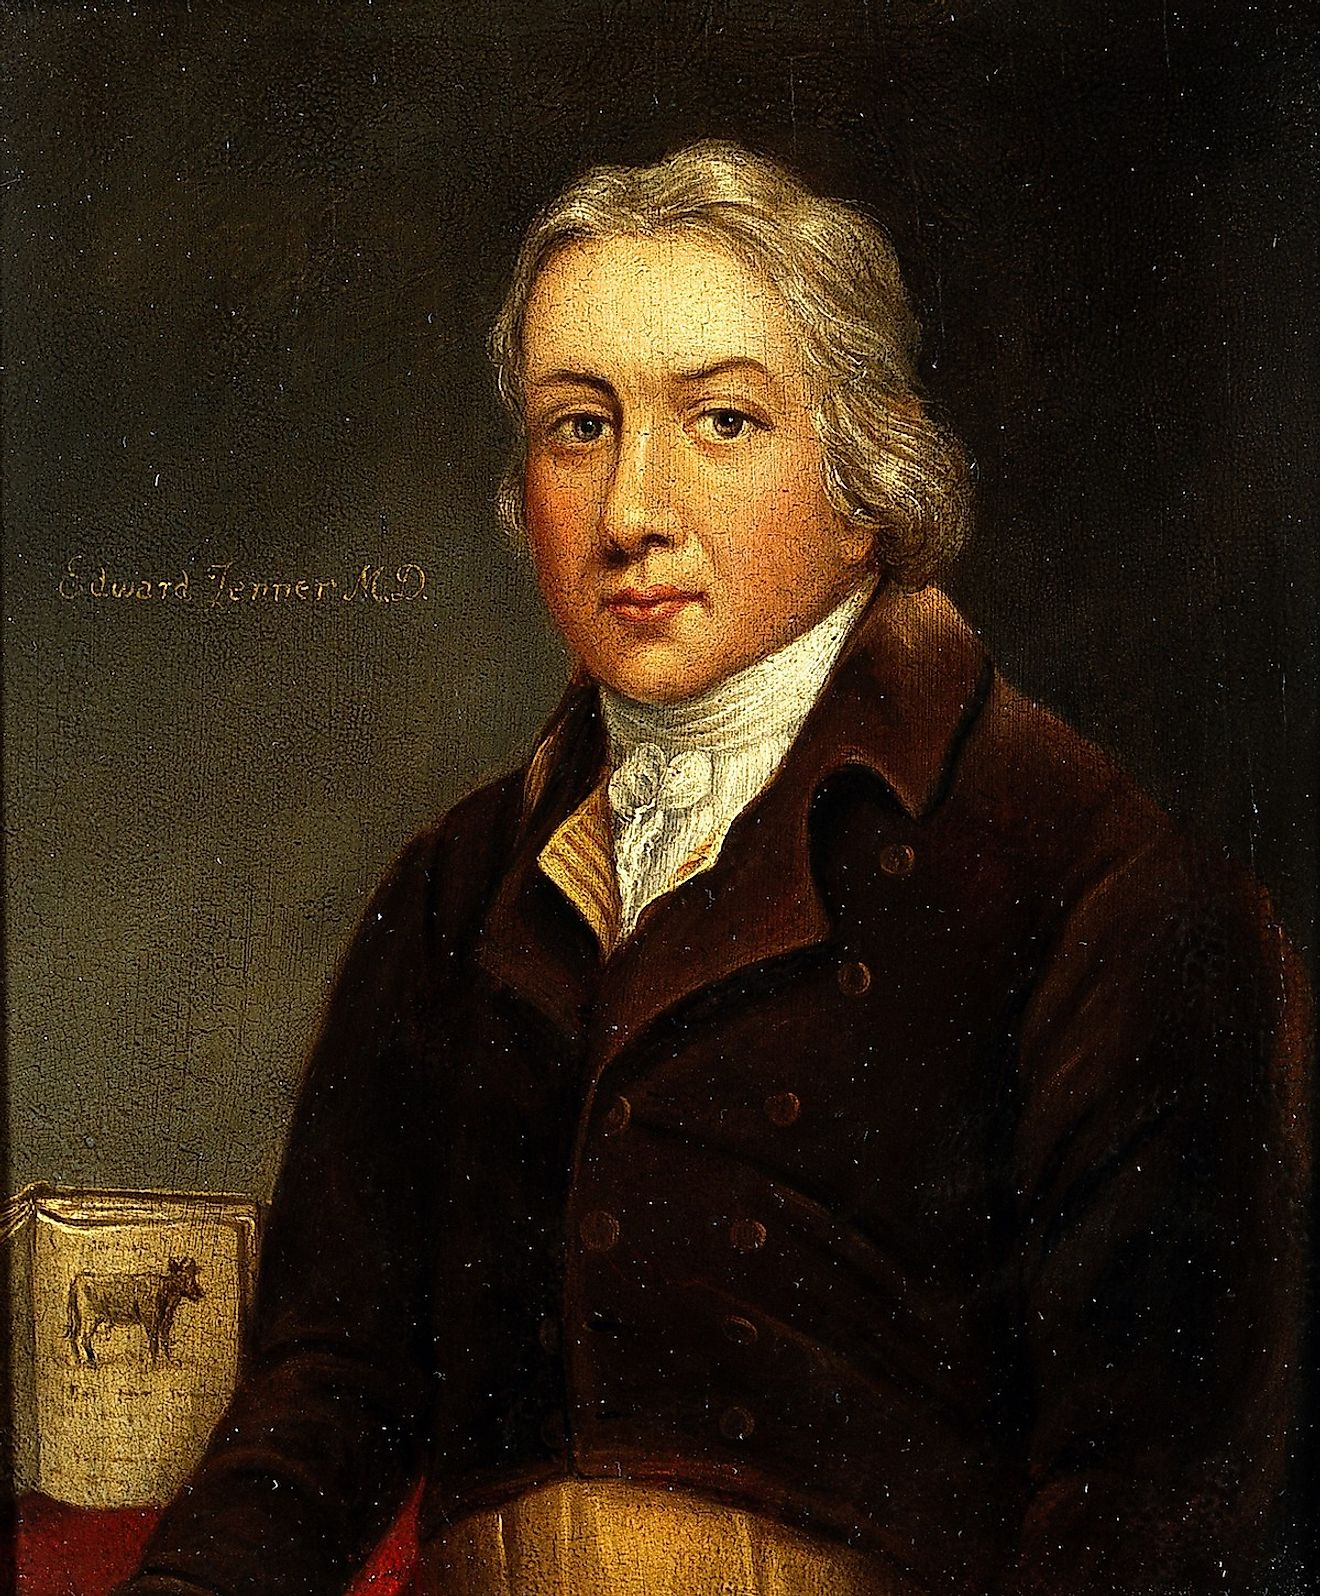 Edward Jenner, made important contributions in the development of the smallpox vaccine that helped save millions of lives.